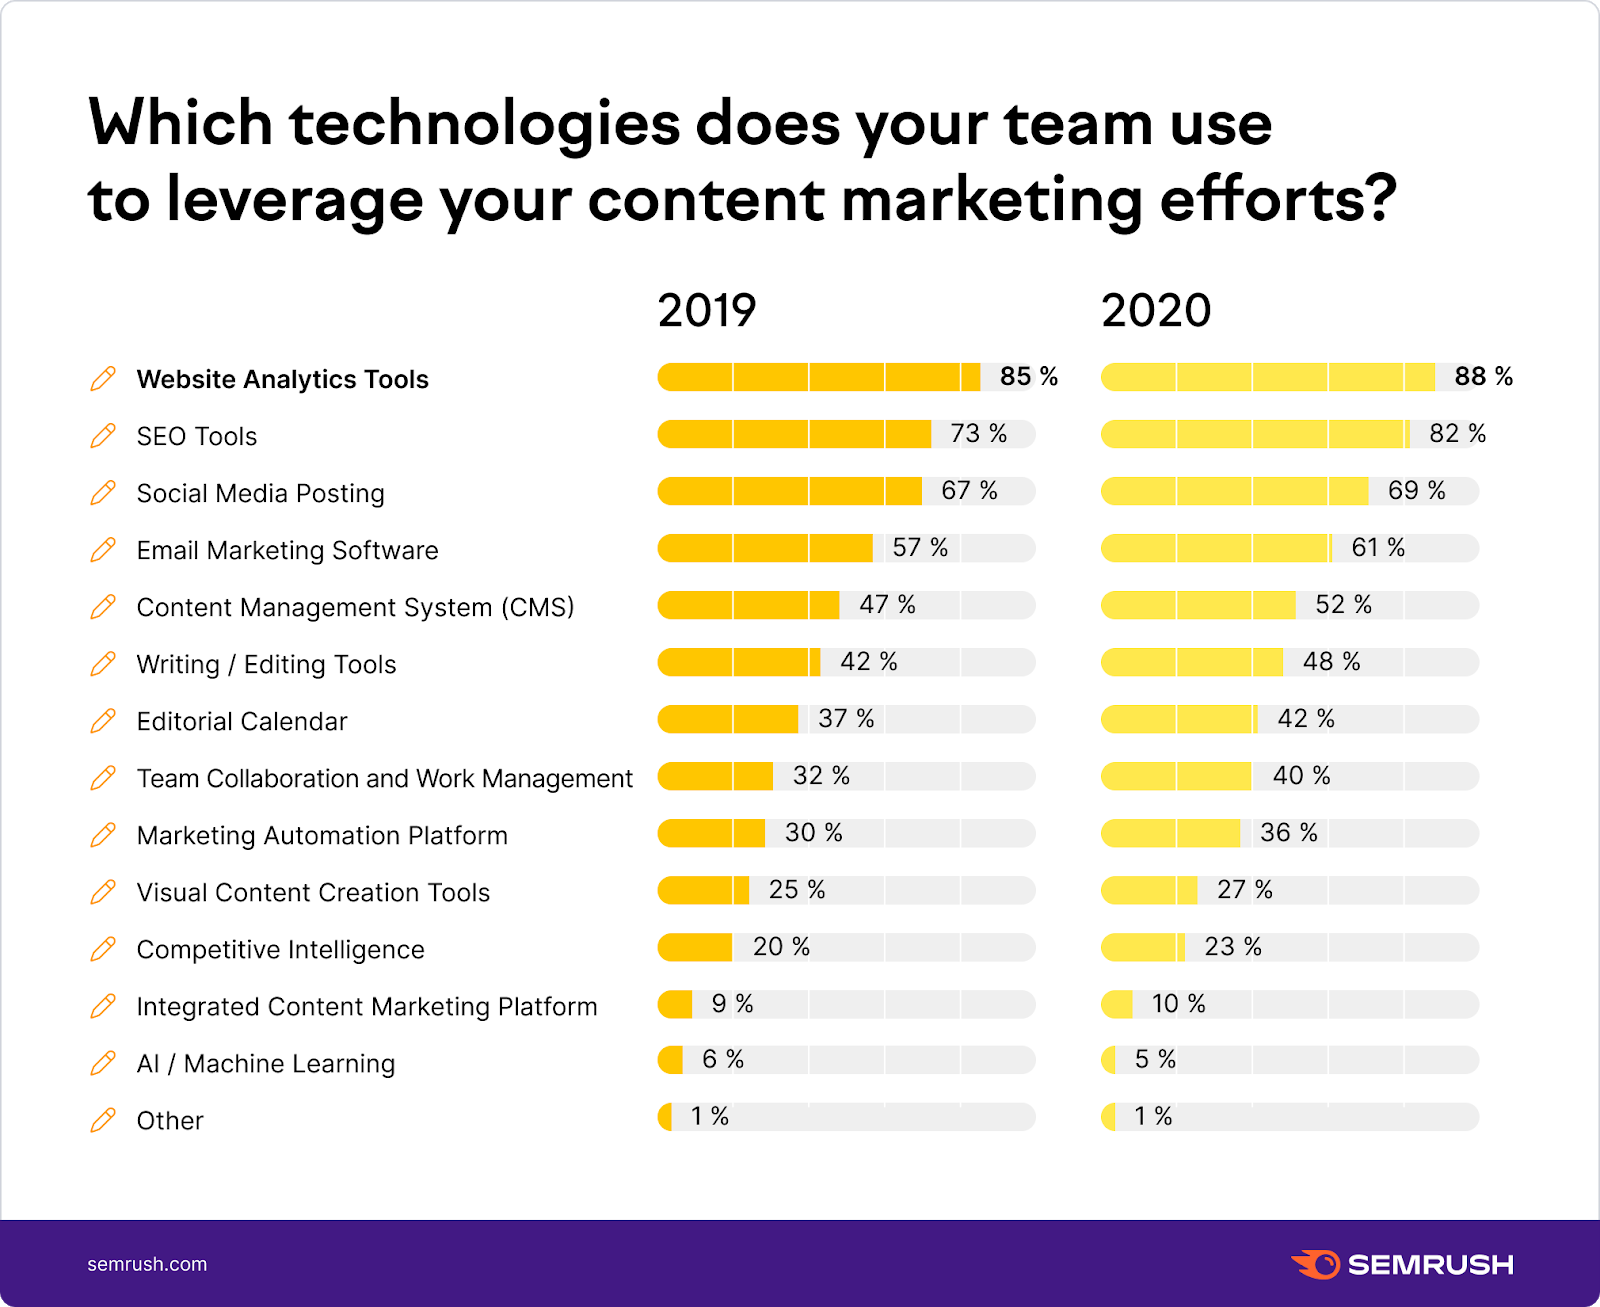 Which technologies do you use for content marketing?